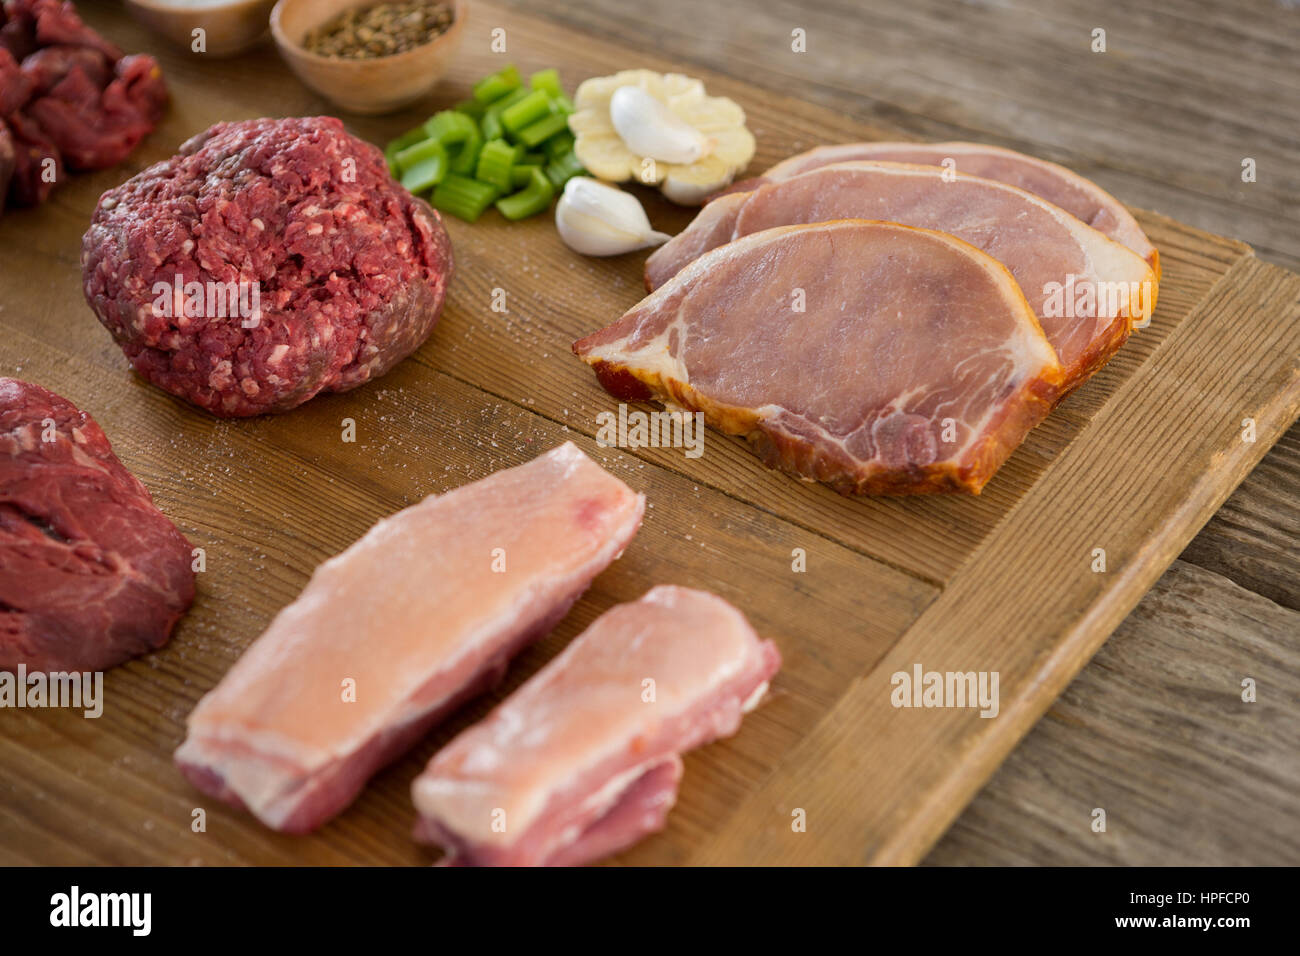 Varieties of meat and spices on wooden tray against wooden background - Stock Image